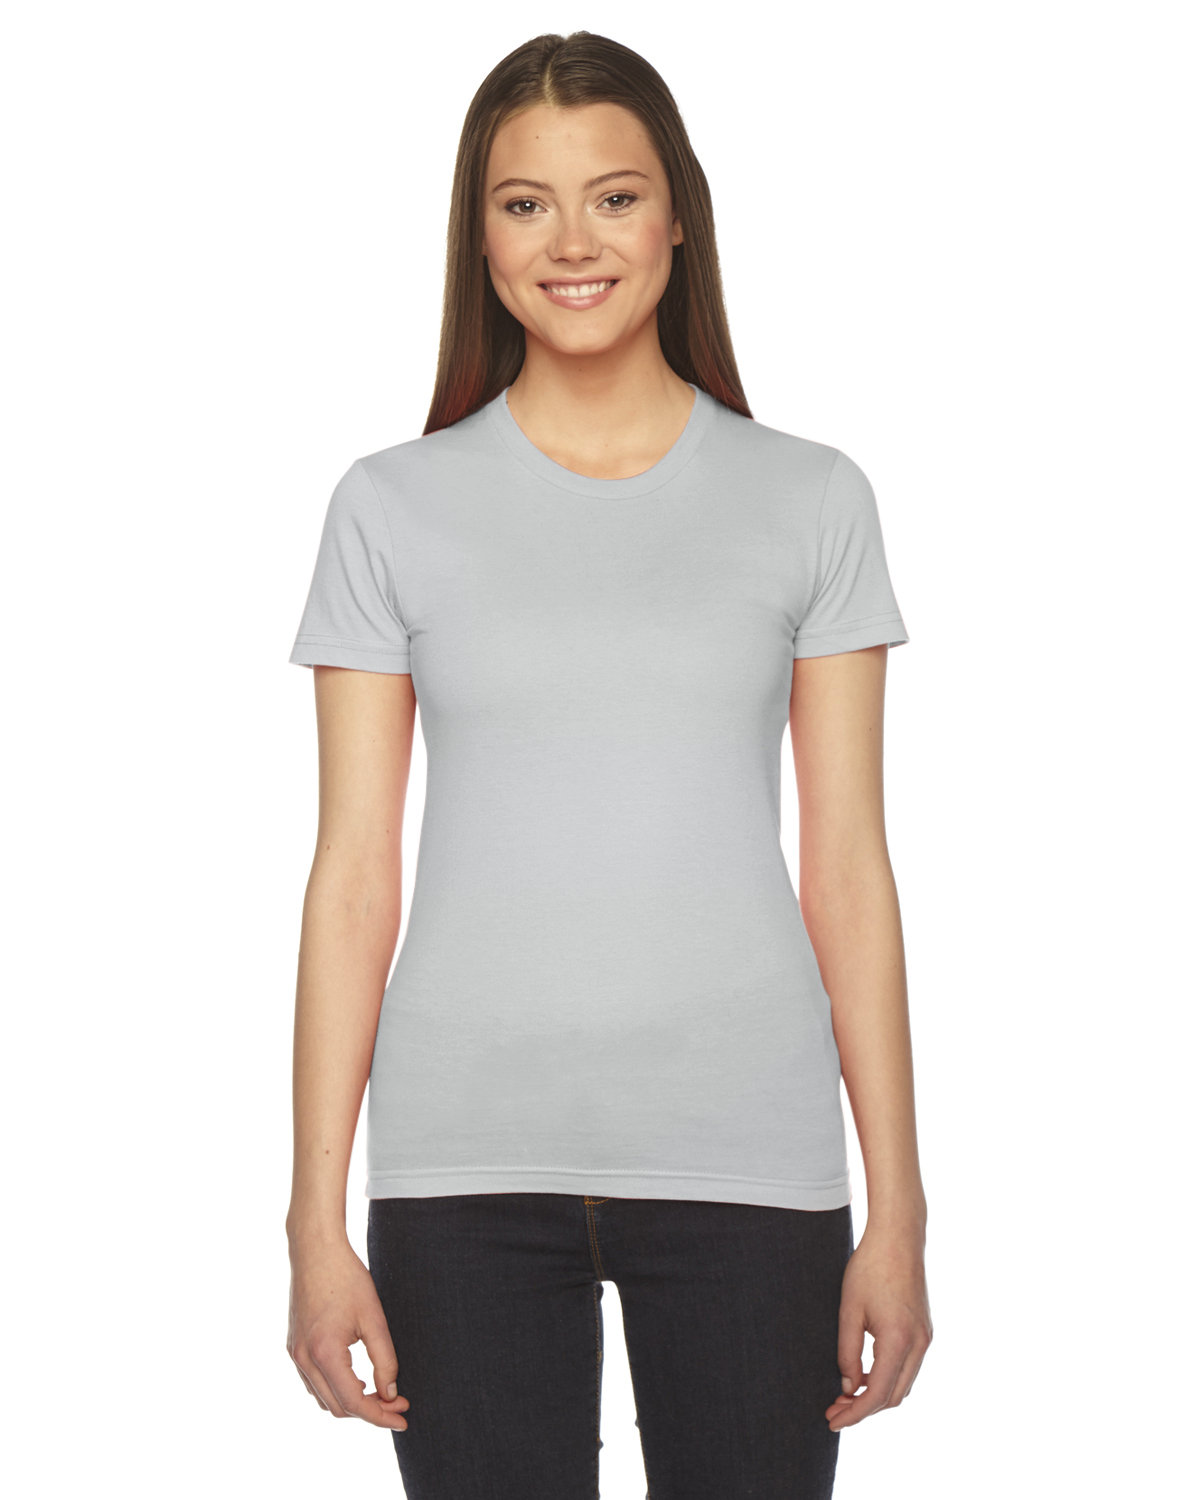 American Apparel Ladies' Fine Jersey Short-Sleeve T-Shirt NEW SILVER